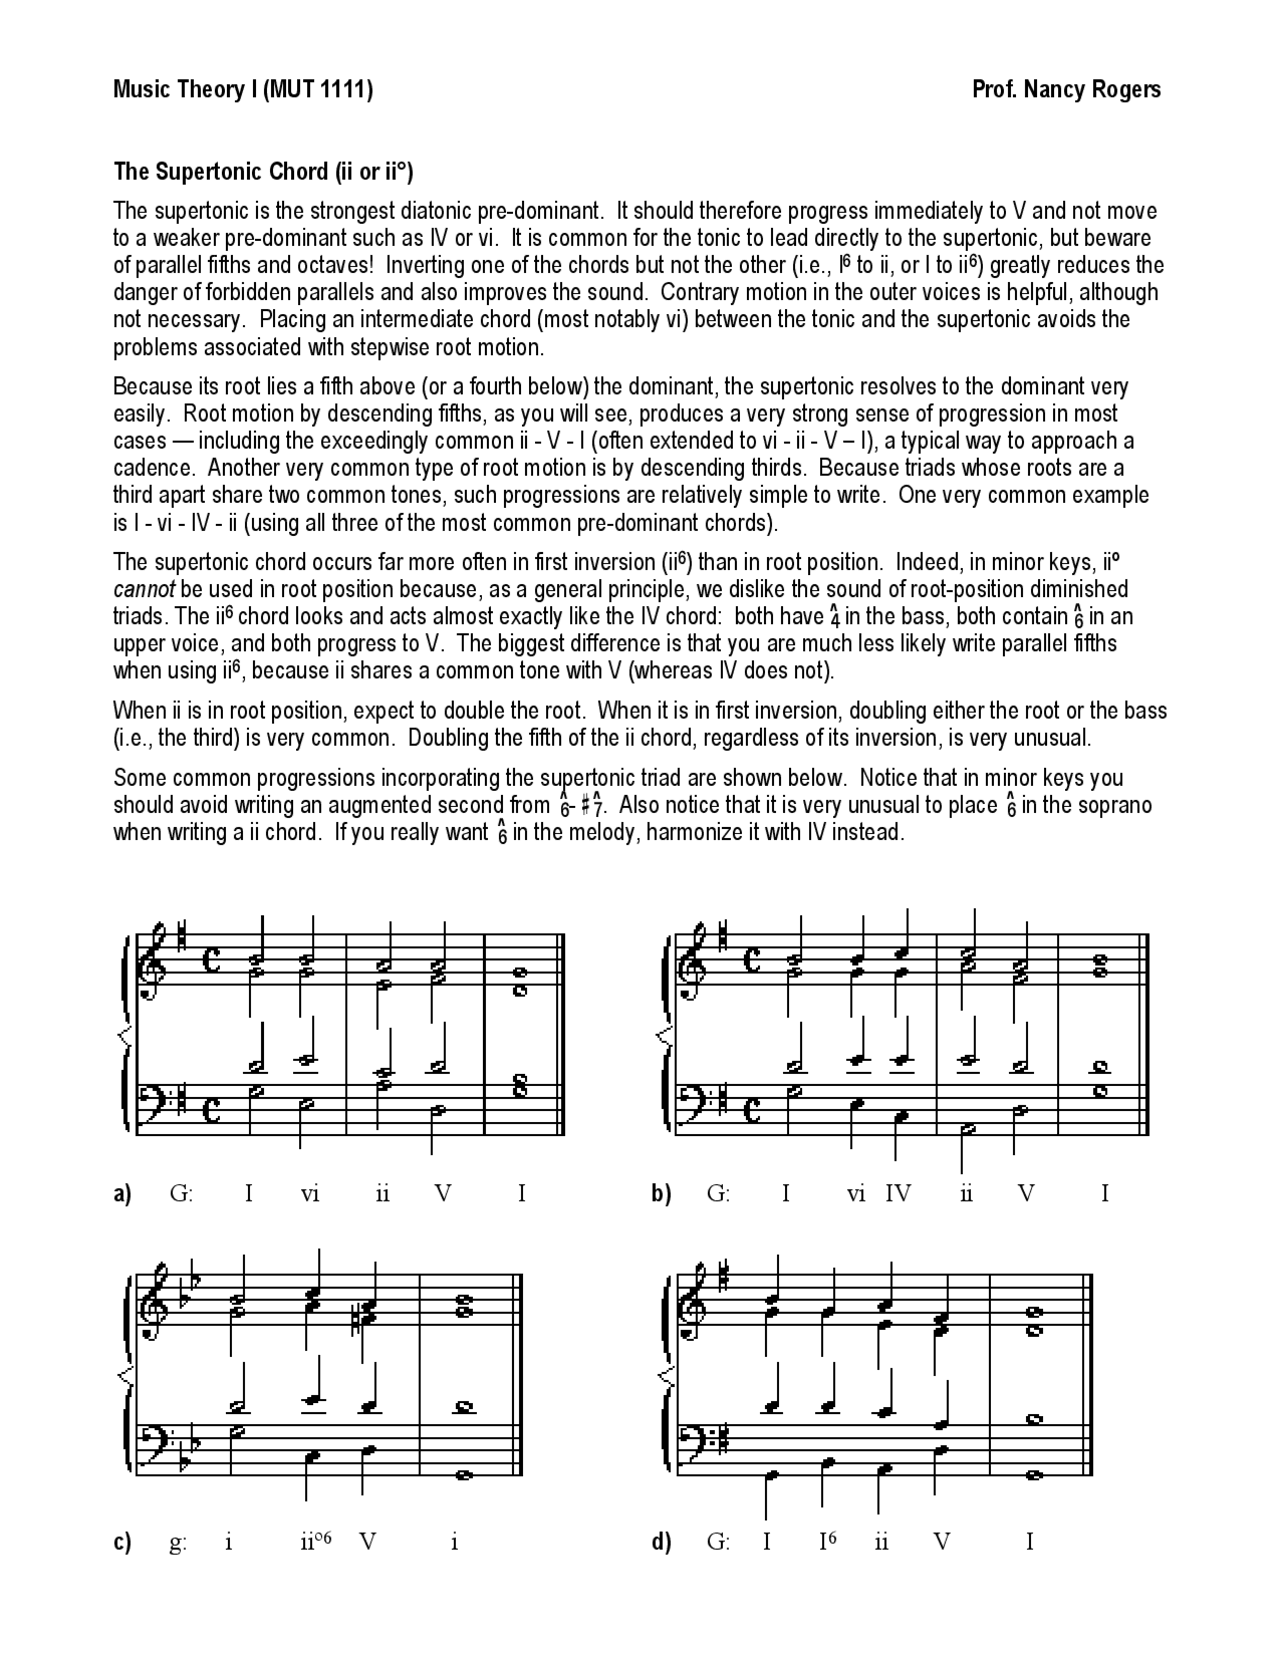 Notes on Supertonic Chord   Music Theory   MUT 20   Docsity